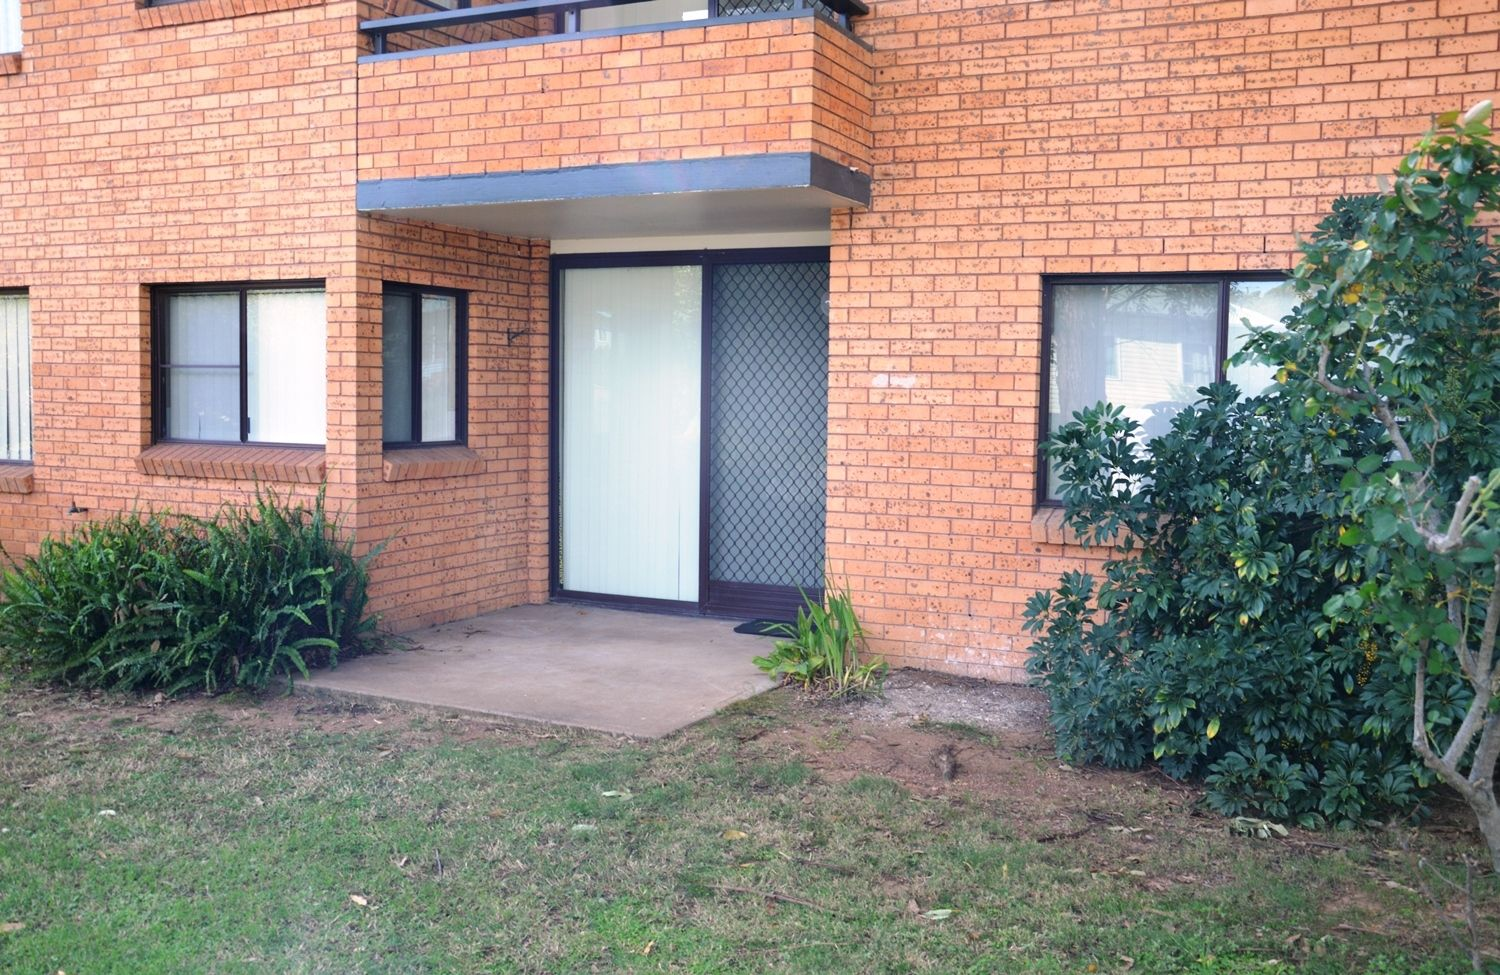 2/6 The Grove, Skellatar Street, Muswellbrook NSW 2333, Image 0